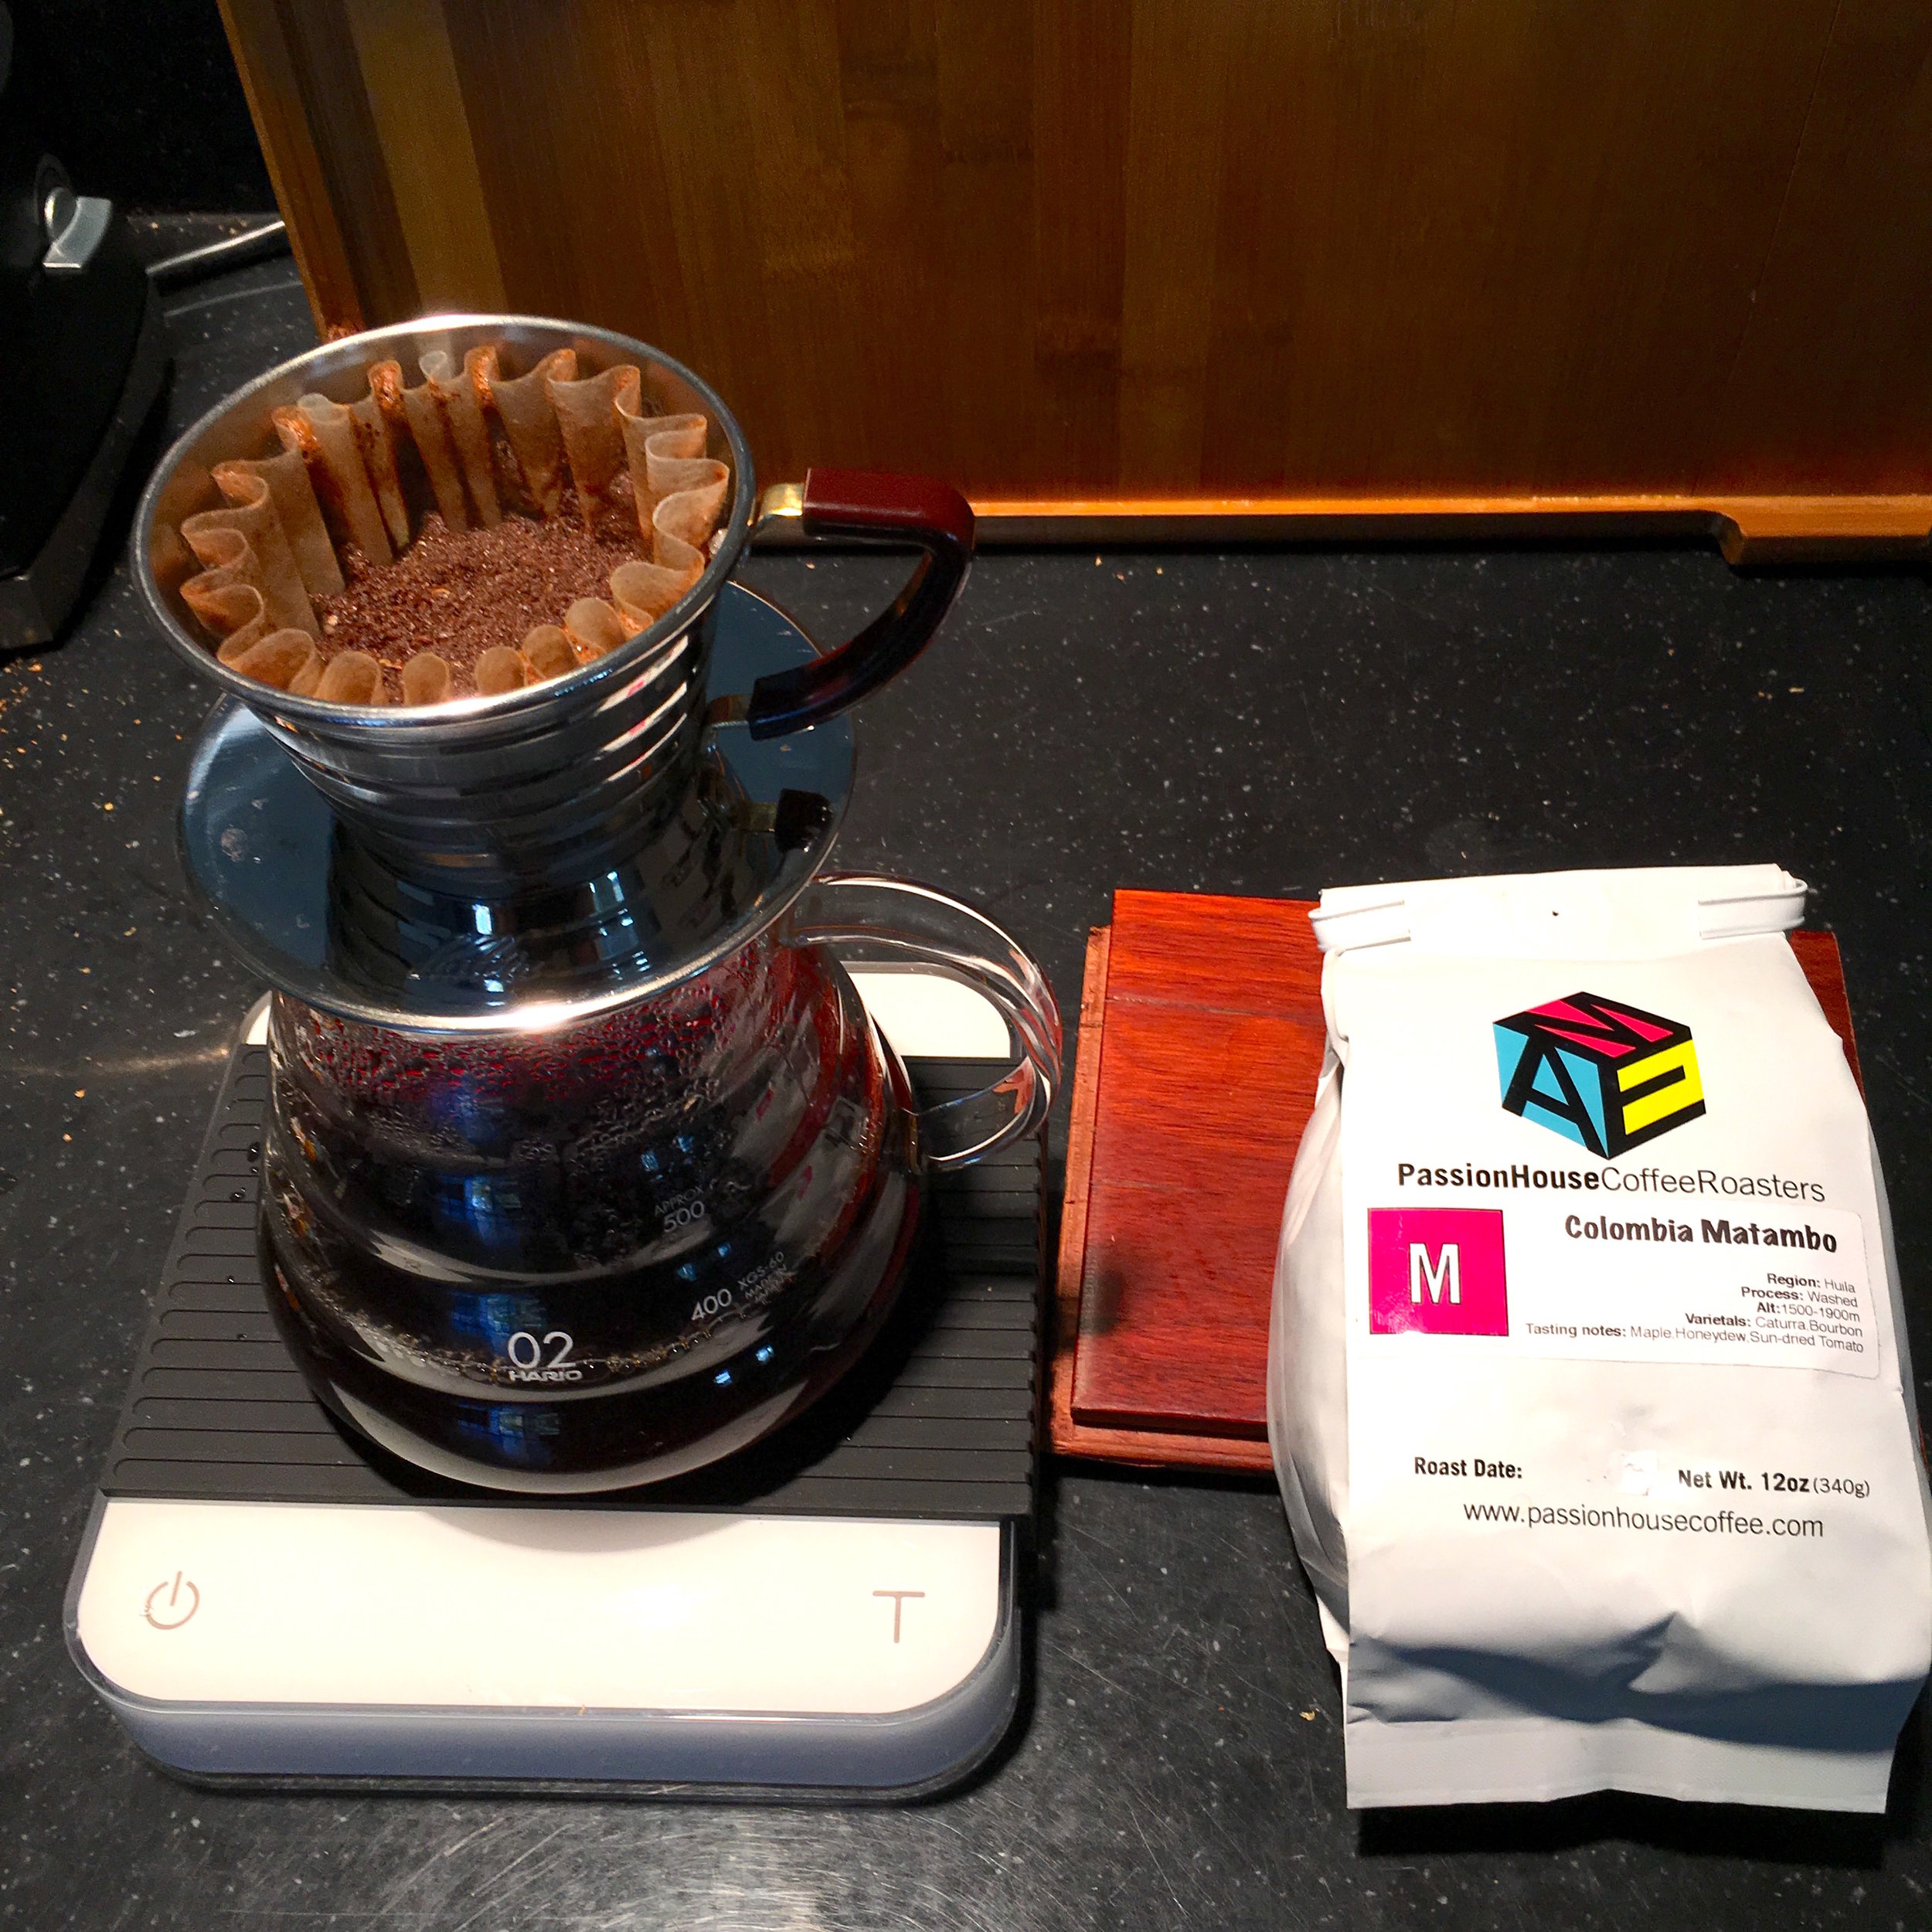 Passion House Colombia Matambo Yield